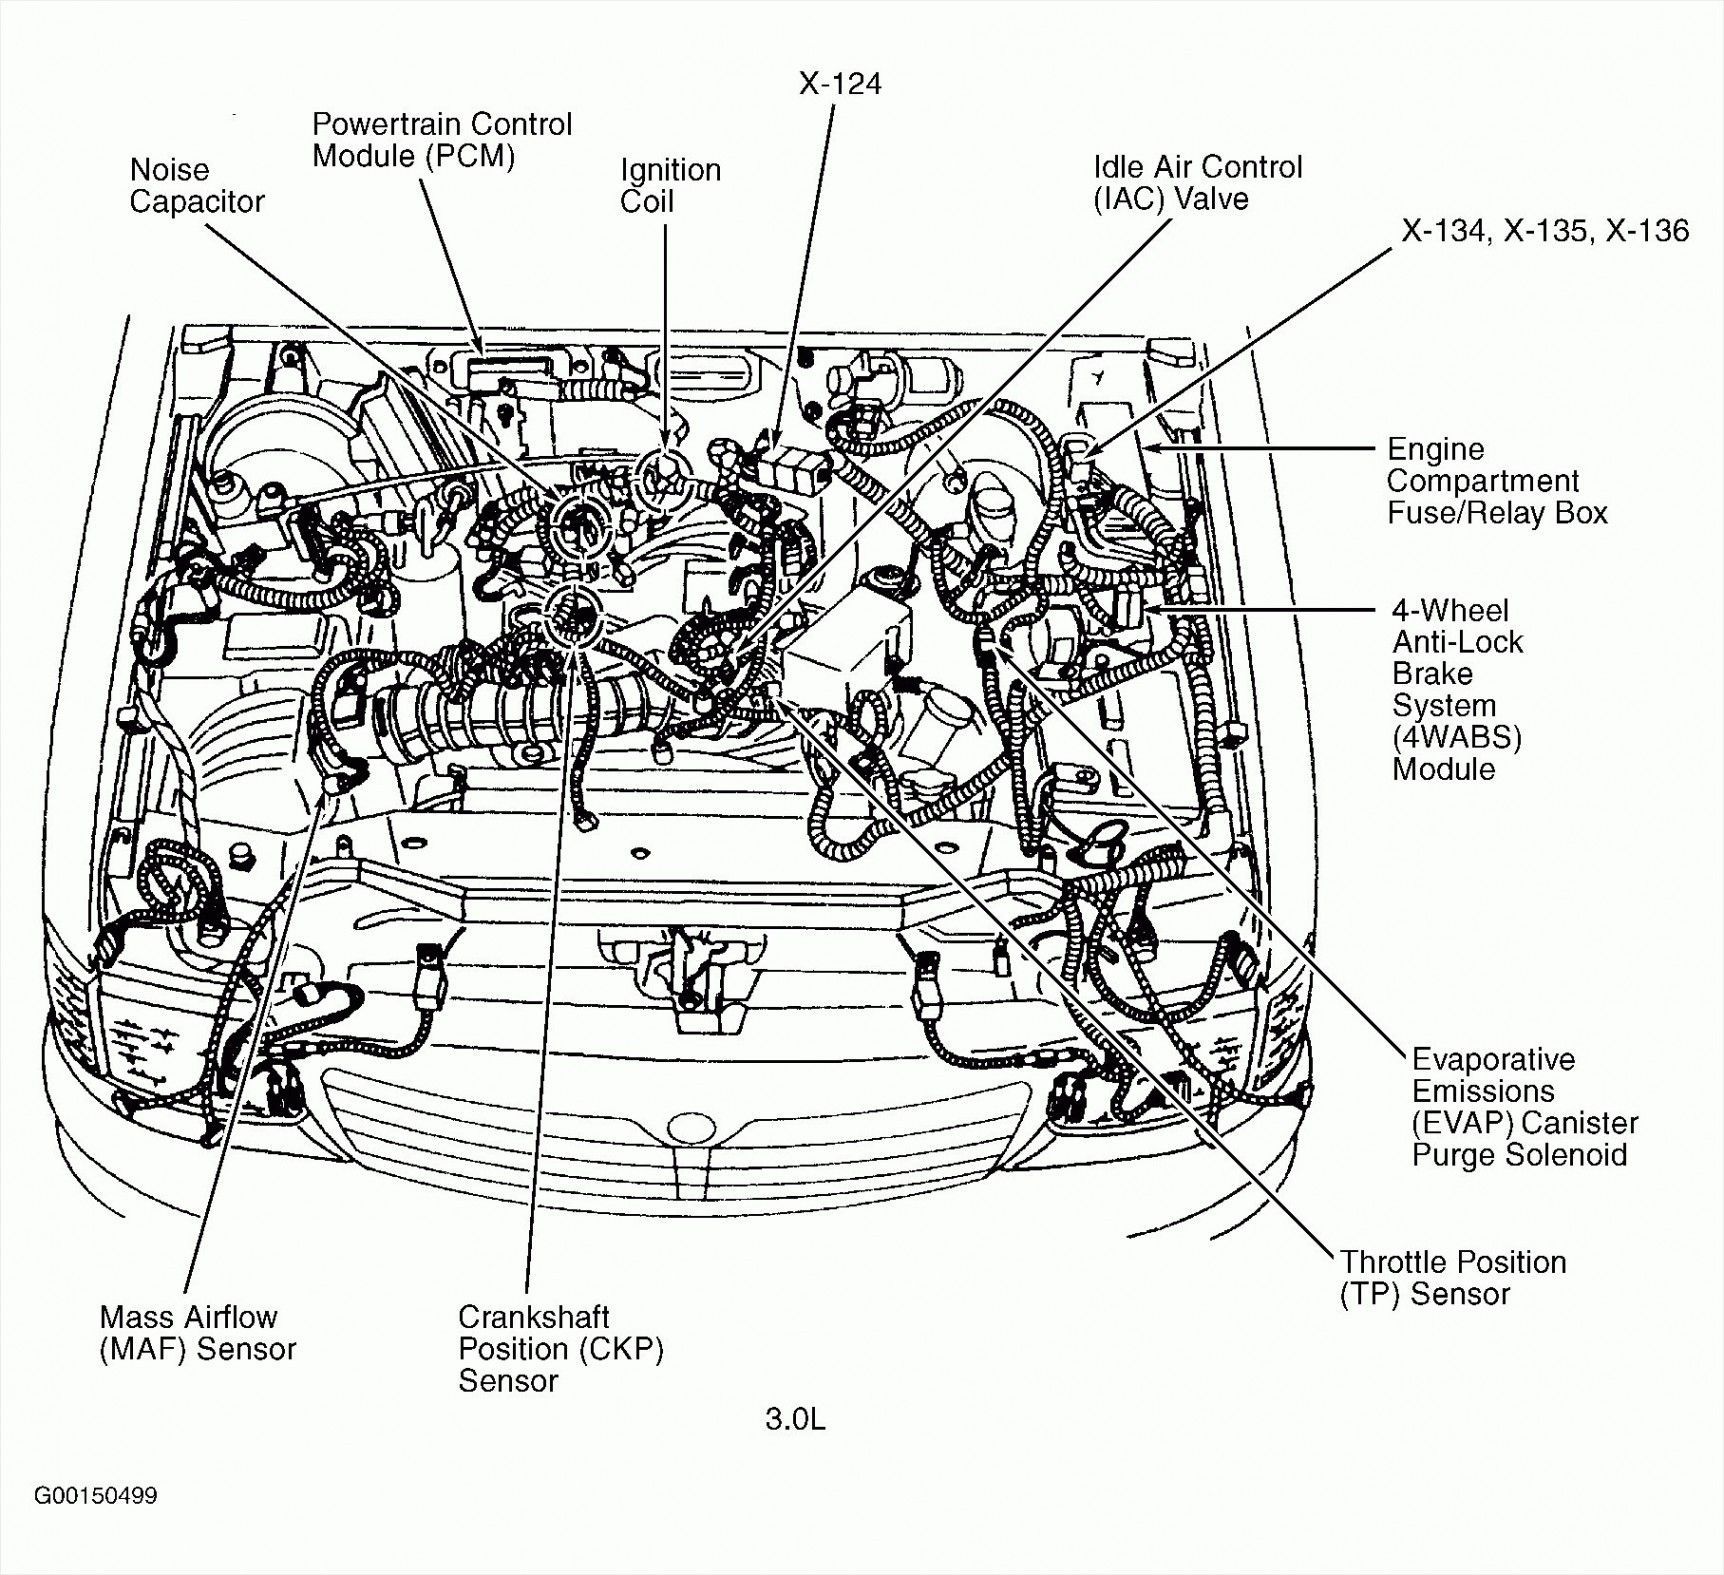 Unique Wiring Diagram 2005 Dodge Ram 1500 Diagram Diagramsample